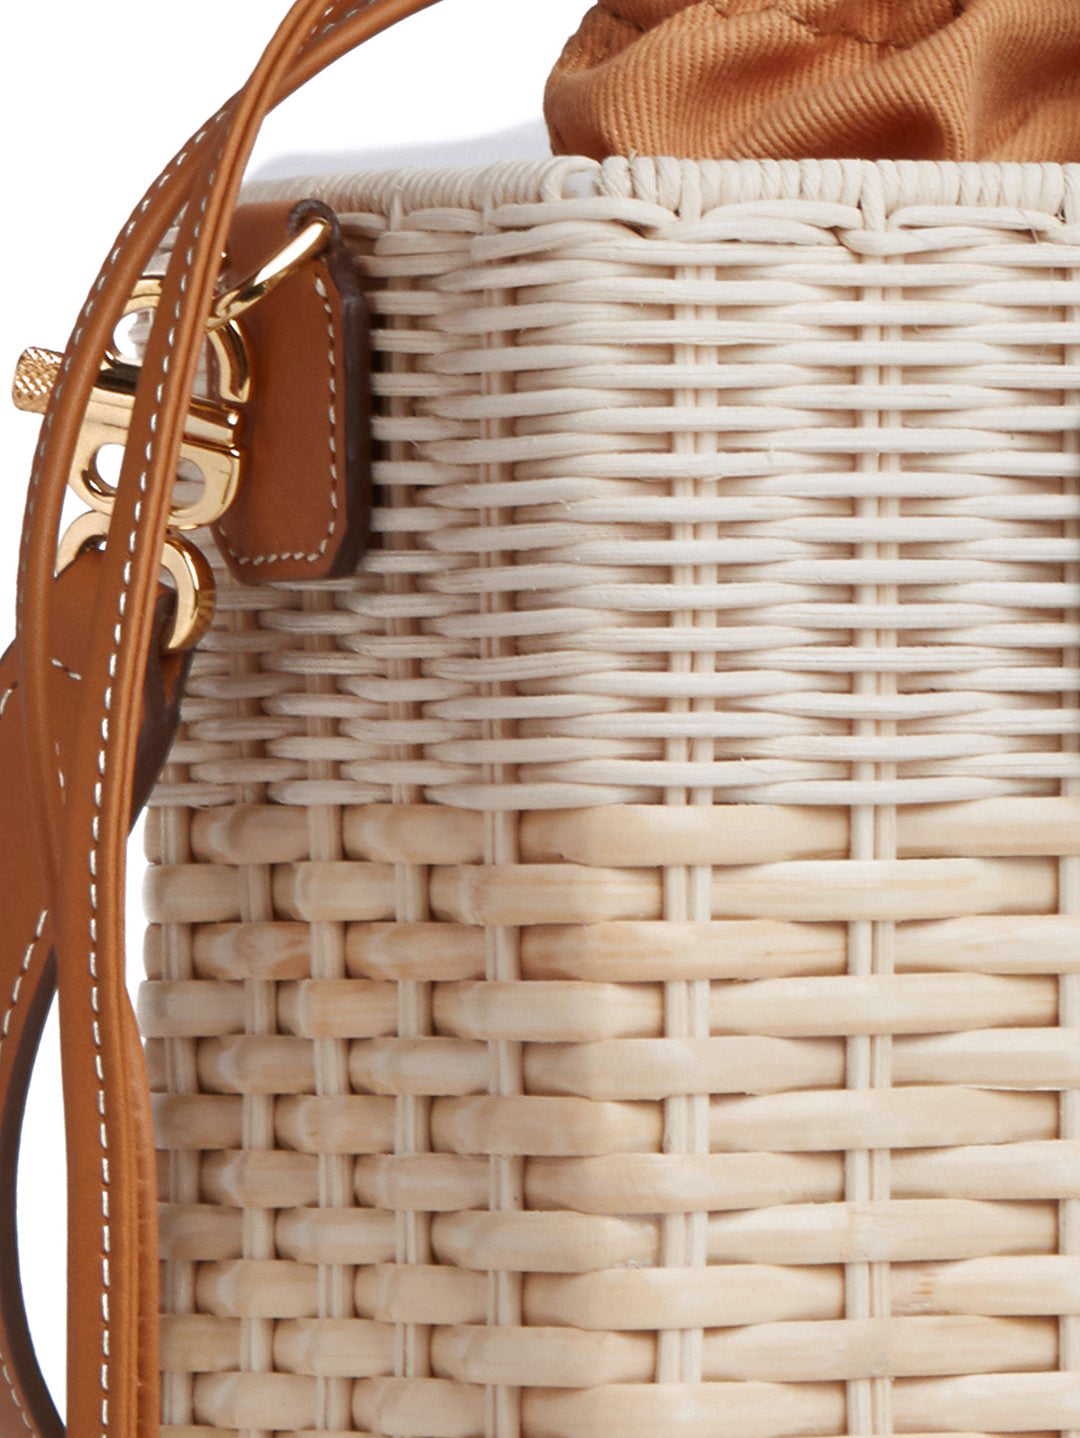 Manray Rattan & Leather Tote Bag Soft Calf Luggage / Bleach Rattan Detail